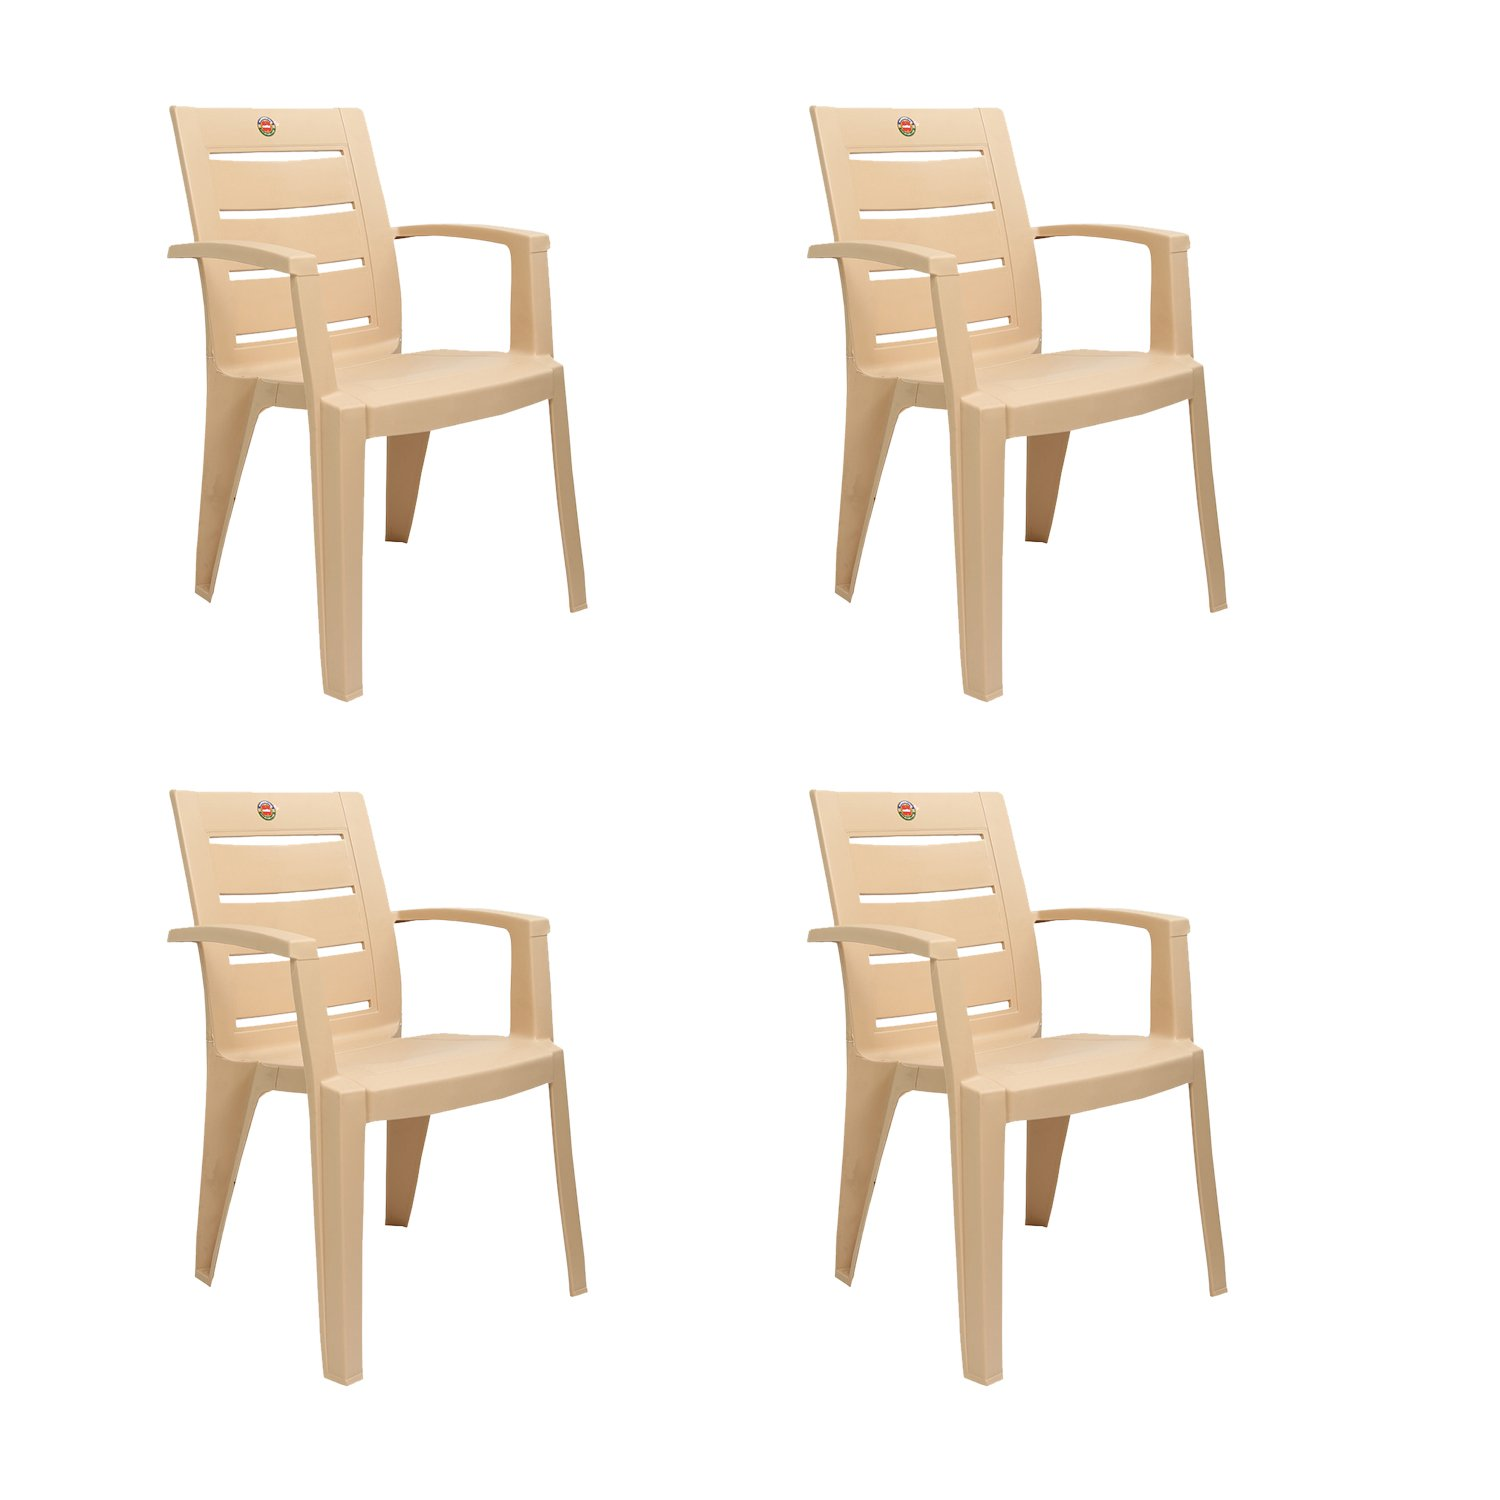 Cello Prospect Set of 4 Chairs Beige Amazon Home & Kitchen